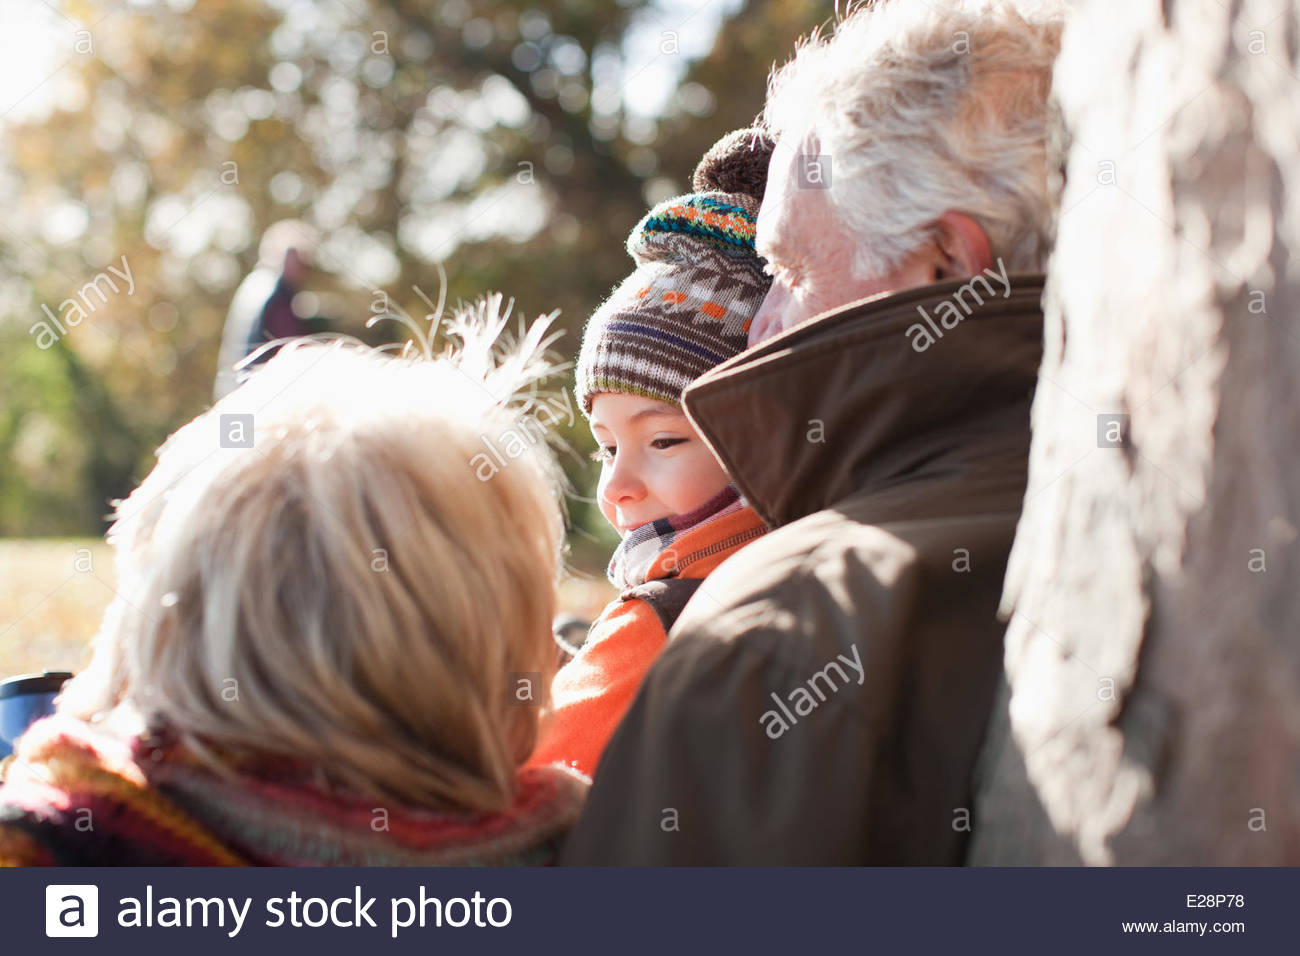 Grandparents  leaning against tree trunk - Stock Image